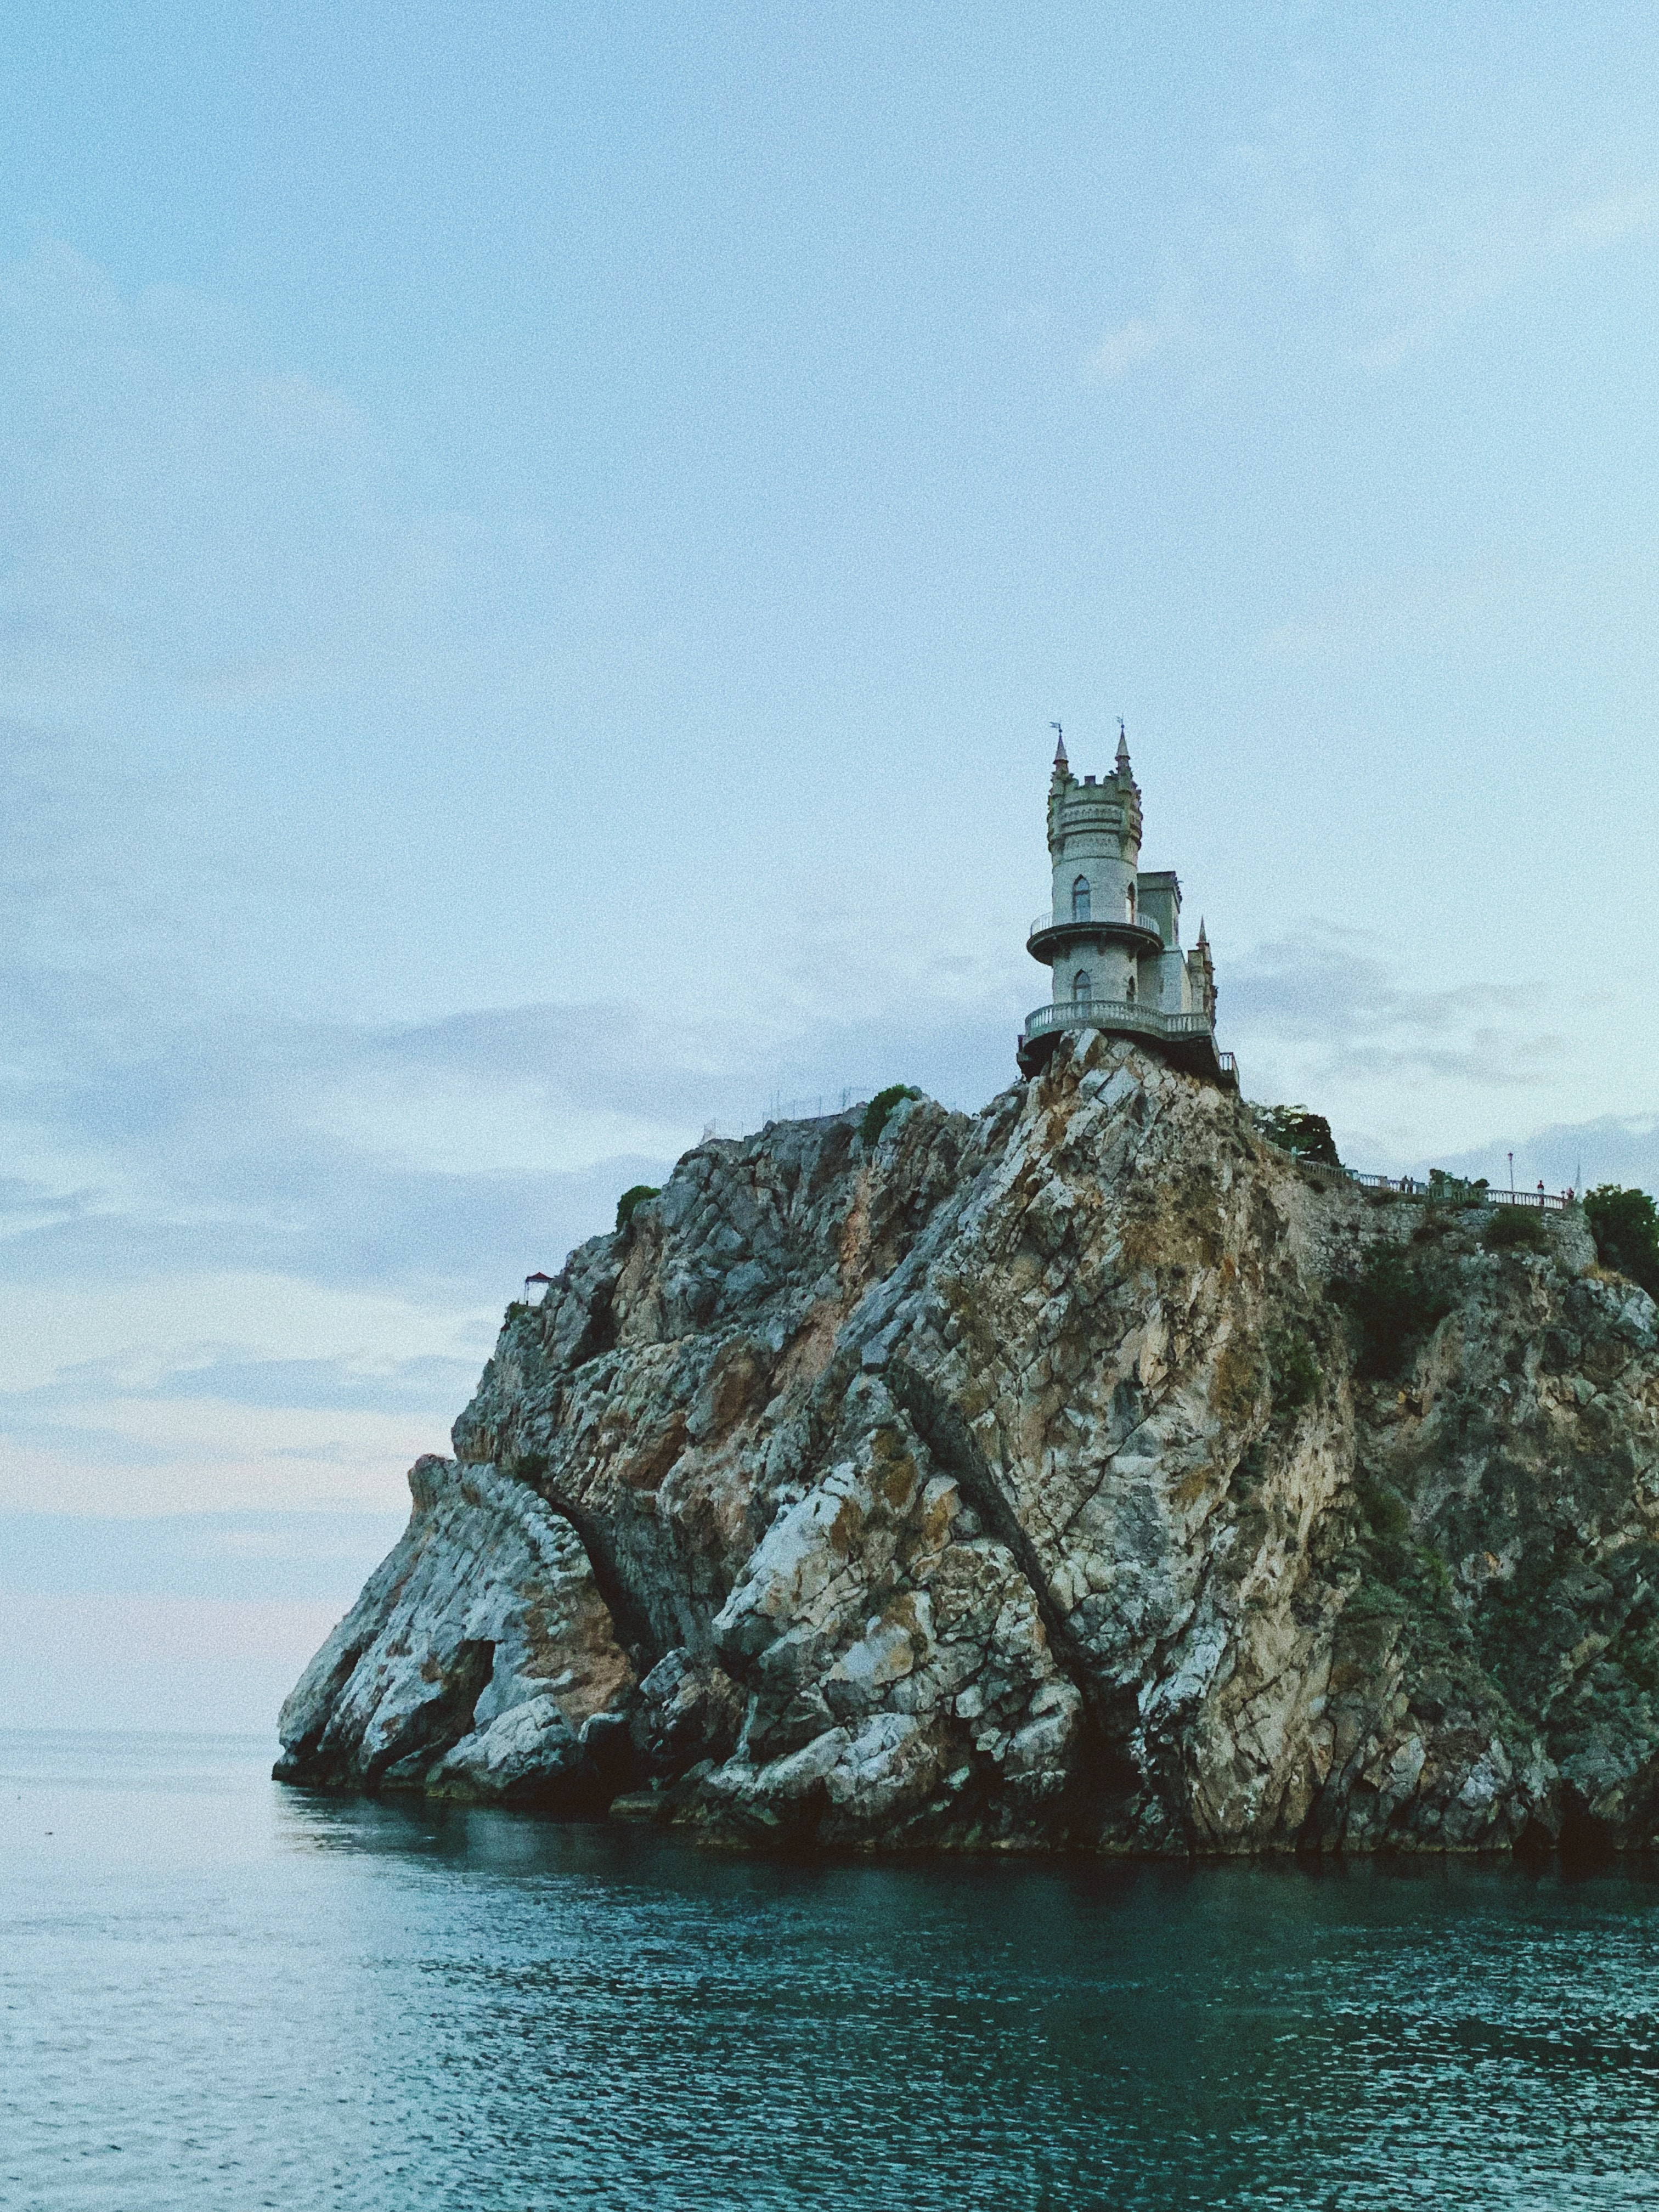 Yalta – From Ancient Greece To Modern  (2/2)